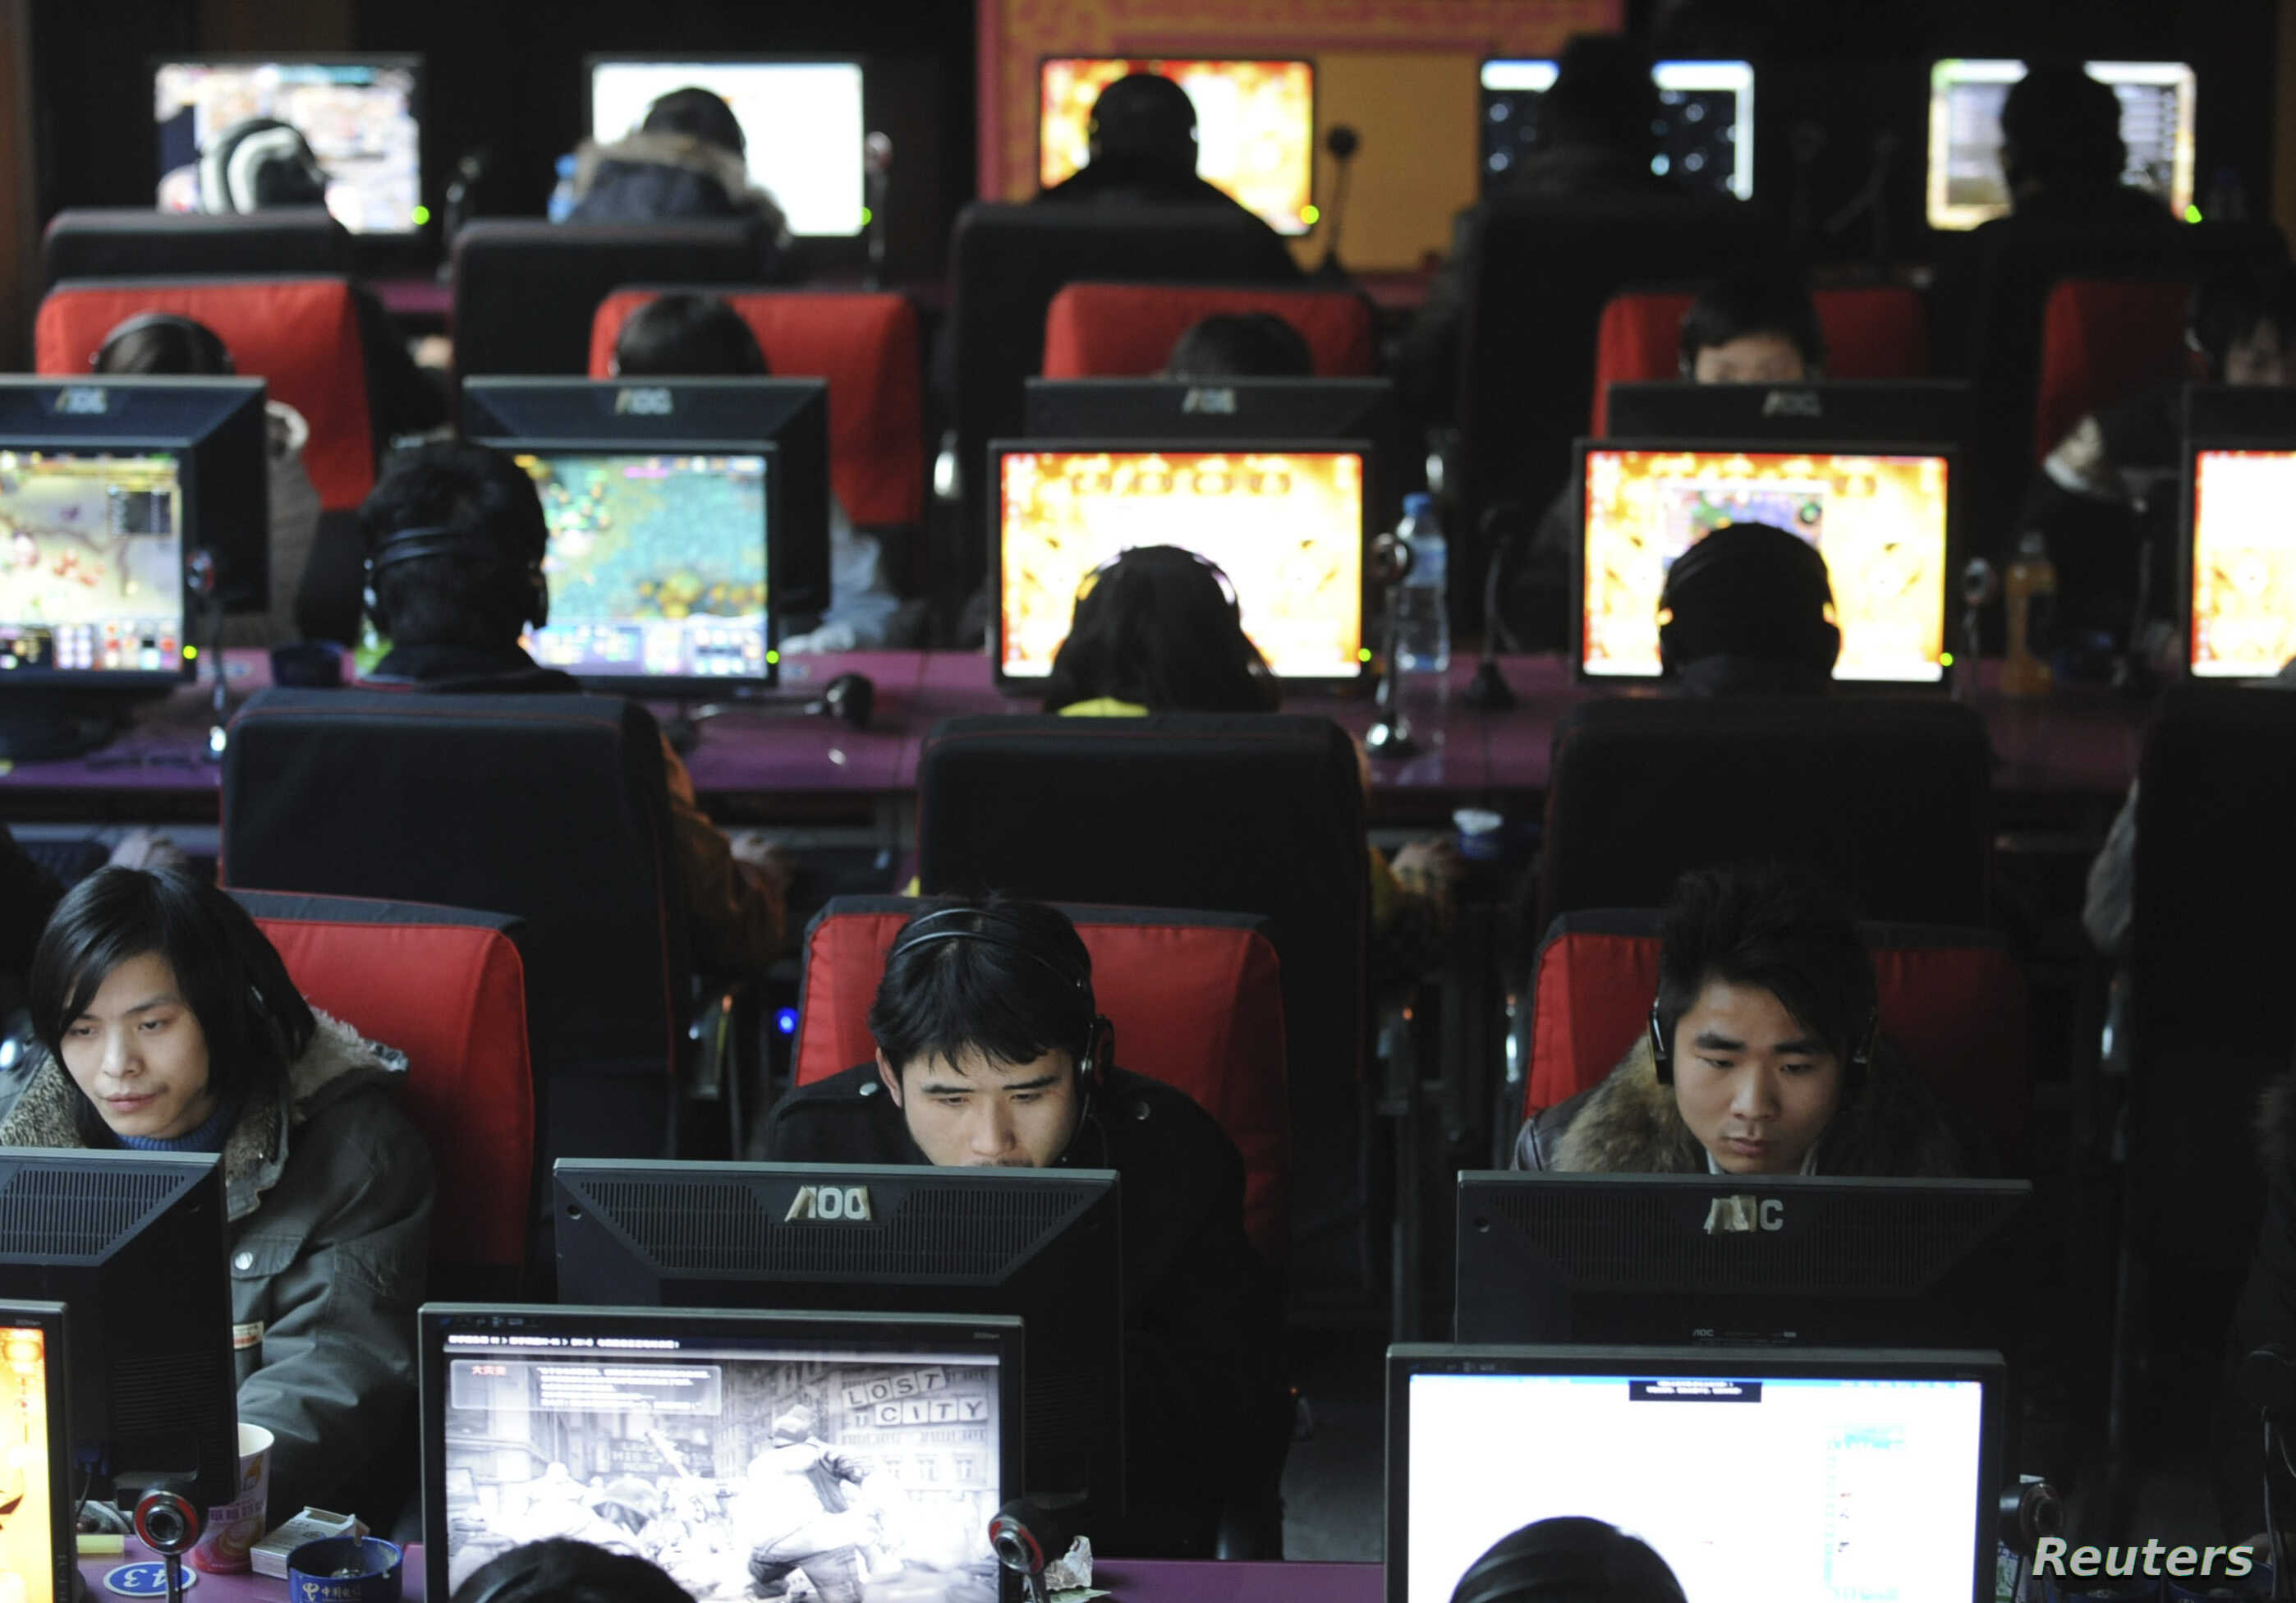 Foreign-Run VPNs Struggle to Evade China's Firewall | Voice